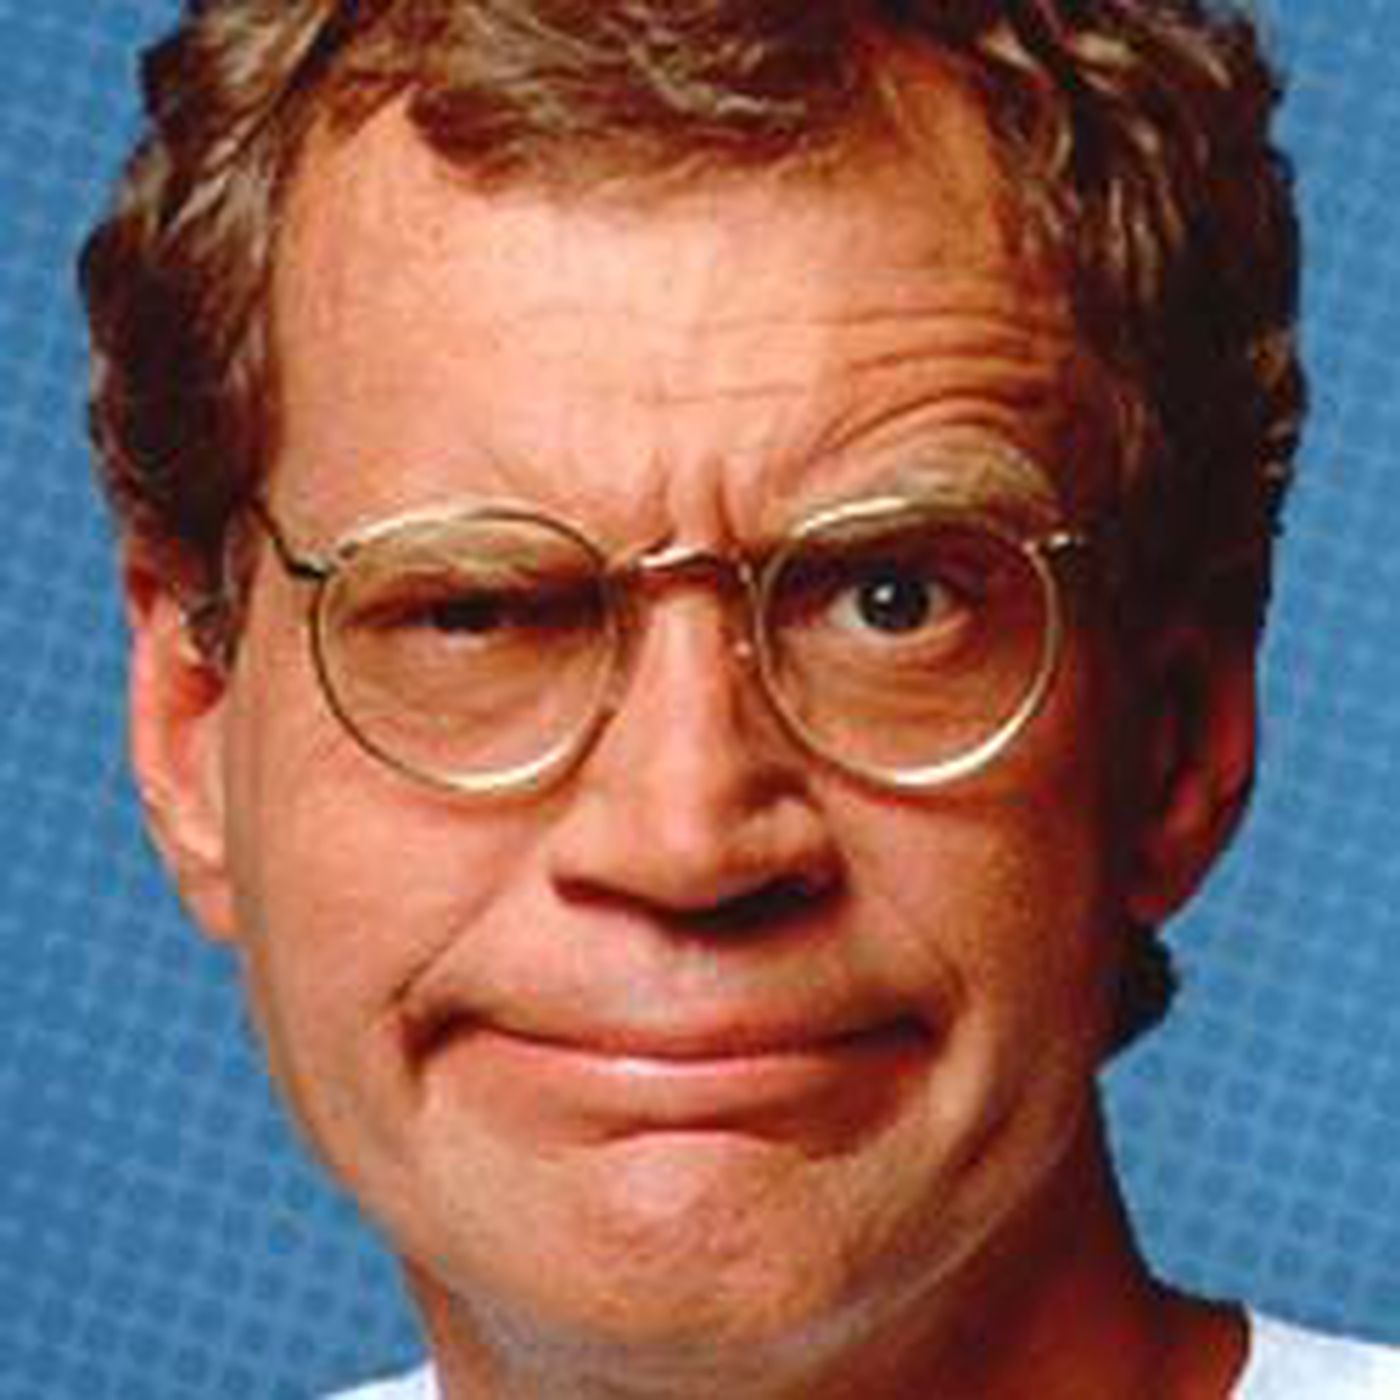 Not Funny: Letterman Reveals Extortion Attempt, Sexual Relations With Staff